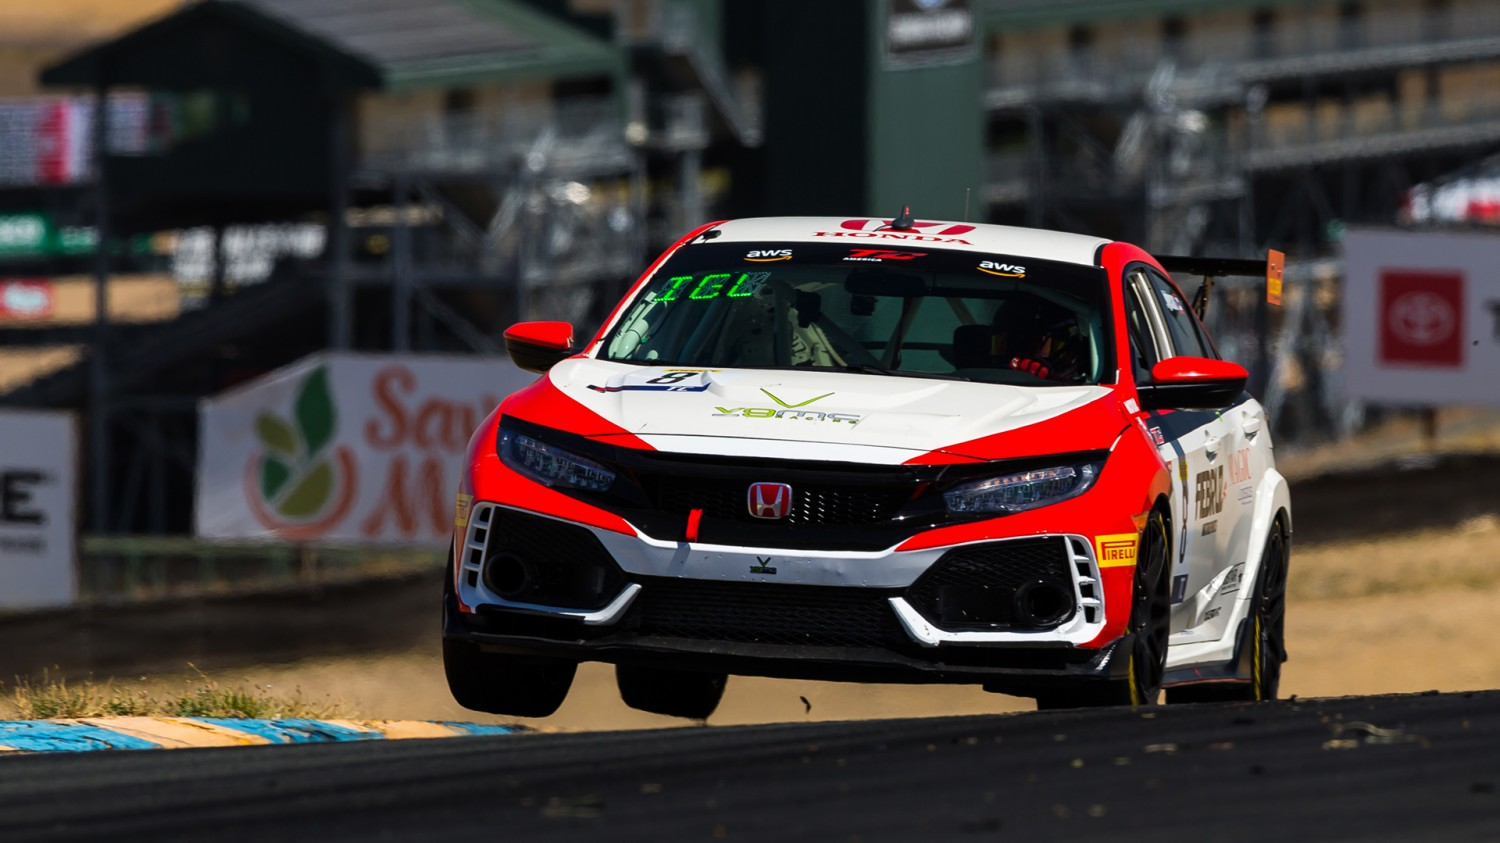 29 Cars Gear Up for 2021 TC America Powered By Skip Barber Racing Season at Sonoma Raceway